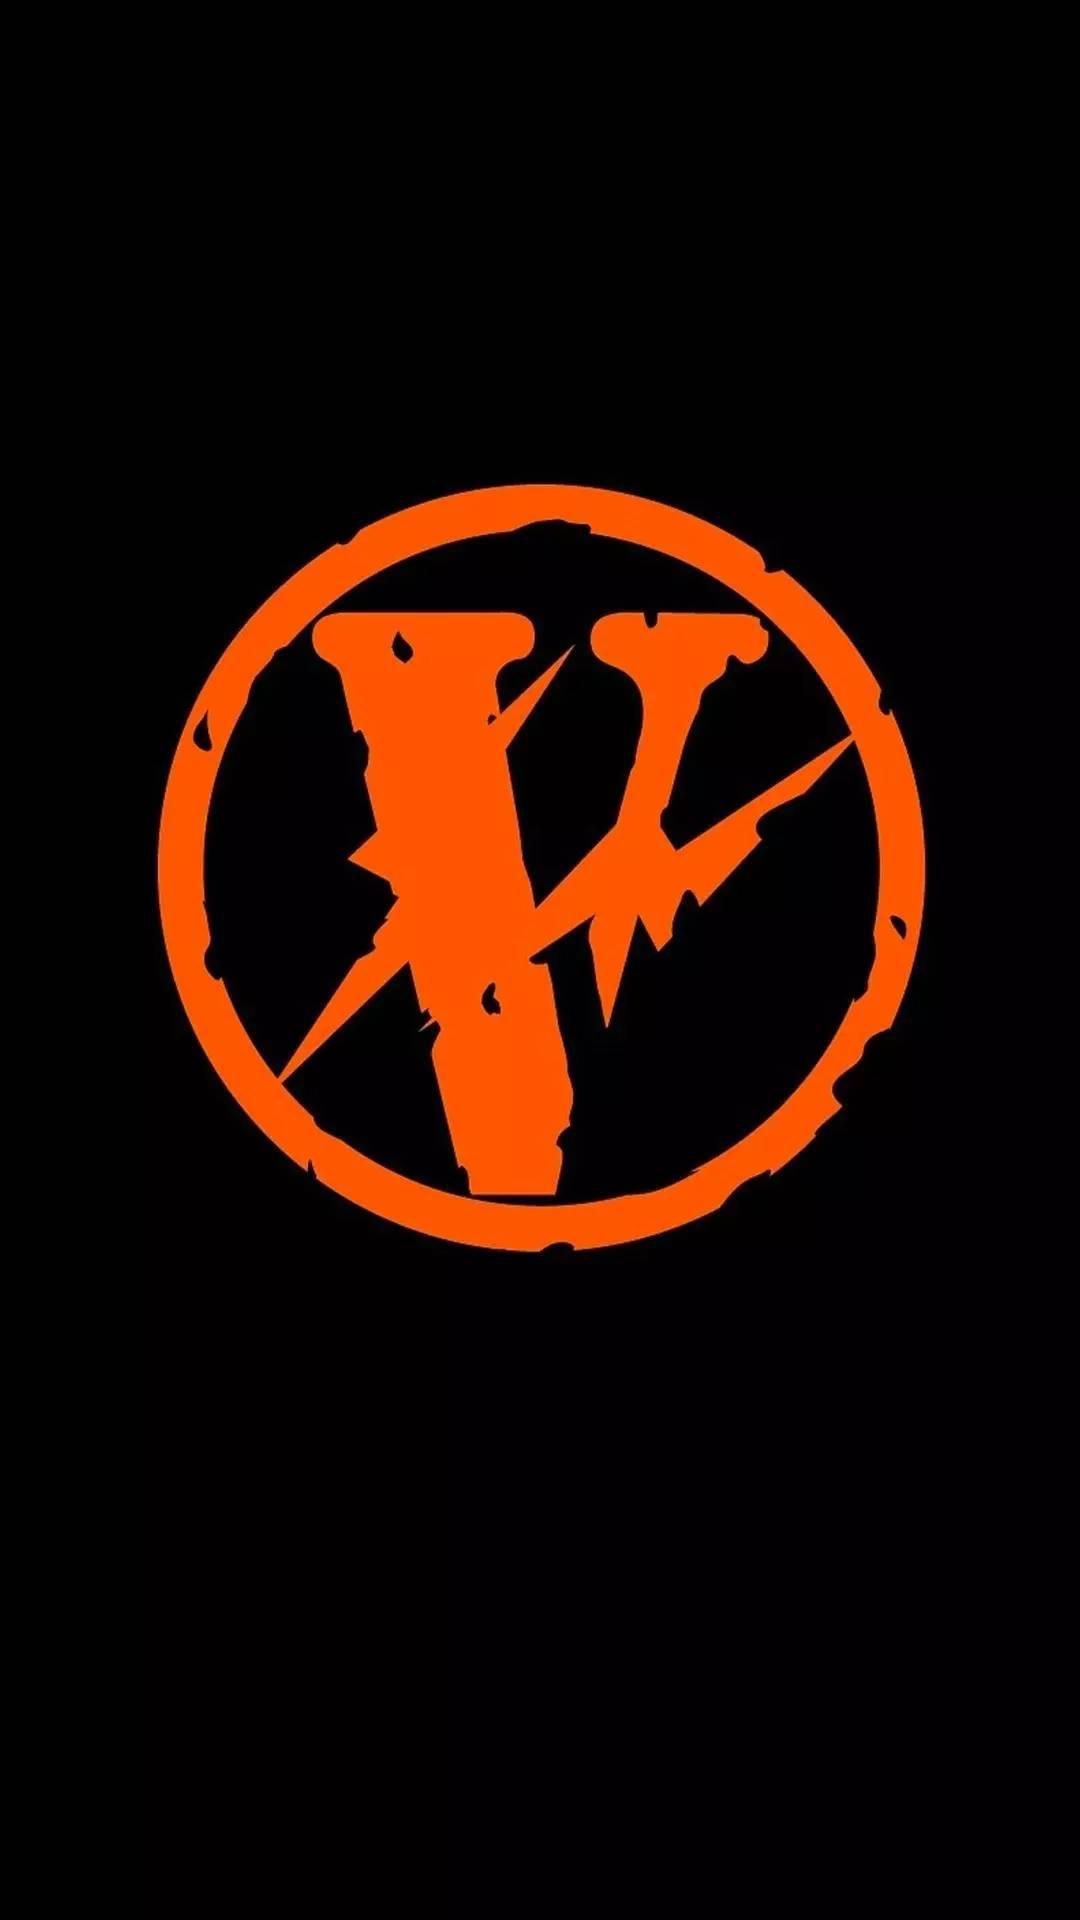 Vlone Wallpapers Top Free Vlone Backgrounds Wallpaperaccess